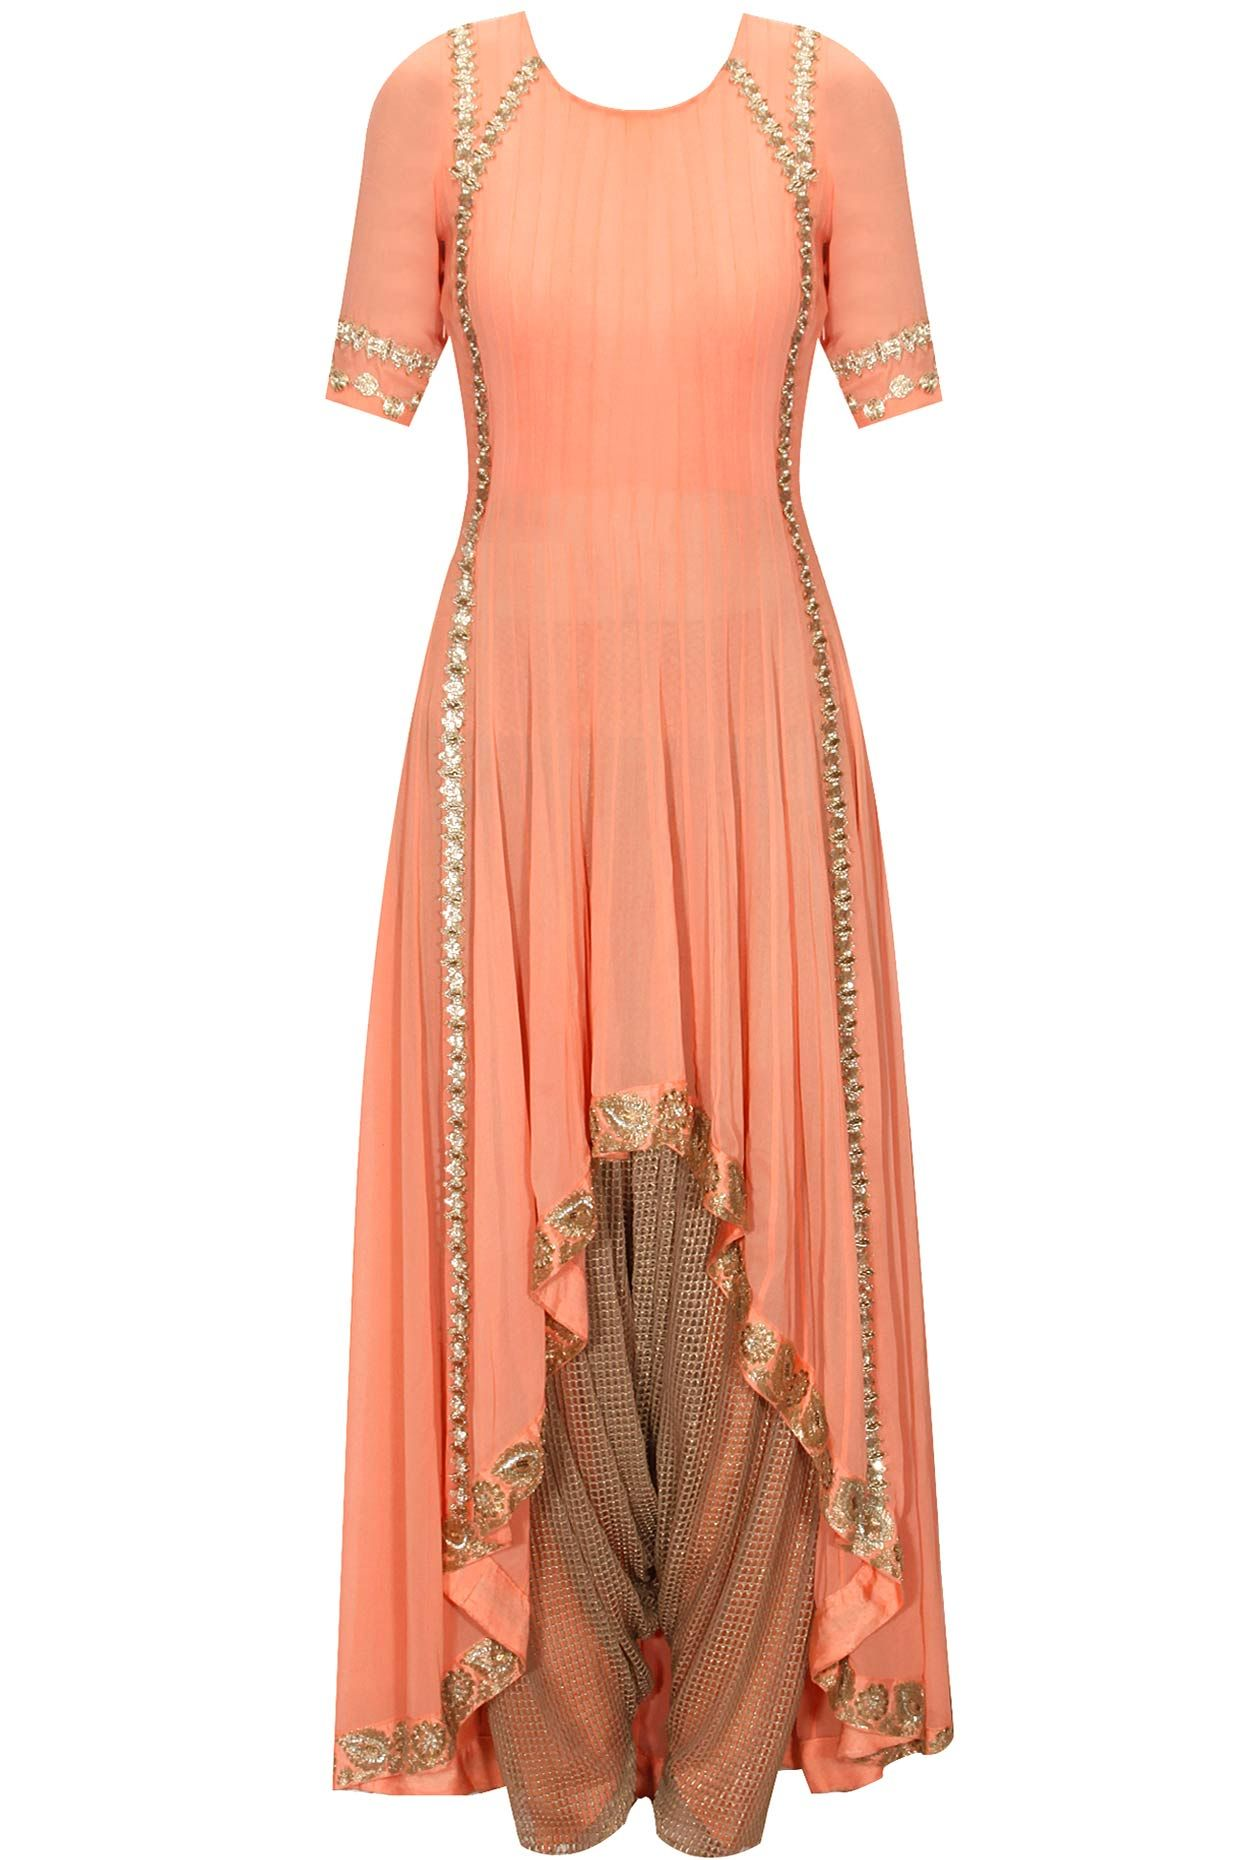 2034b0ebe7 Coral pink high-low kurta with gold dhoti pants available only at Pernia's  Pop-up Shop.